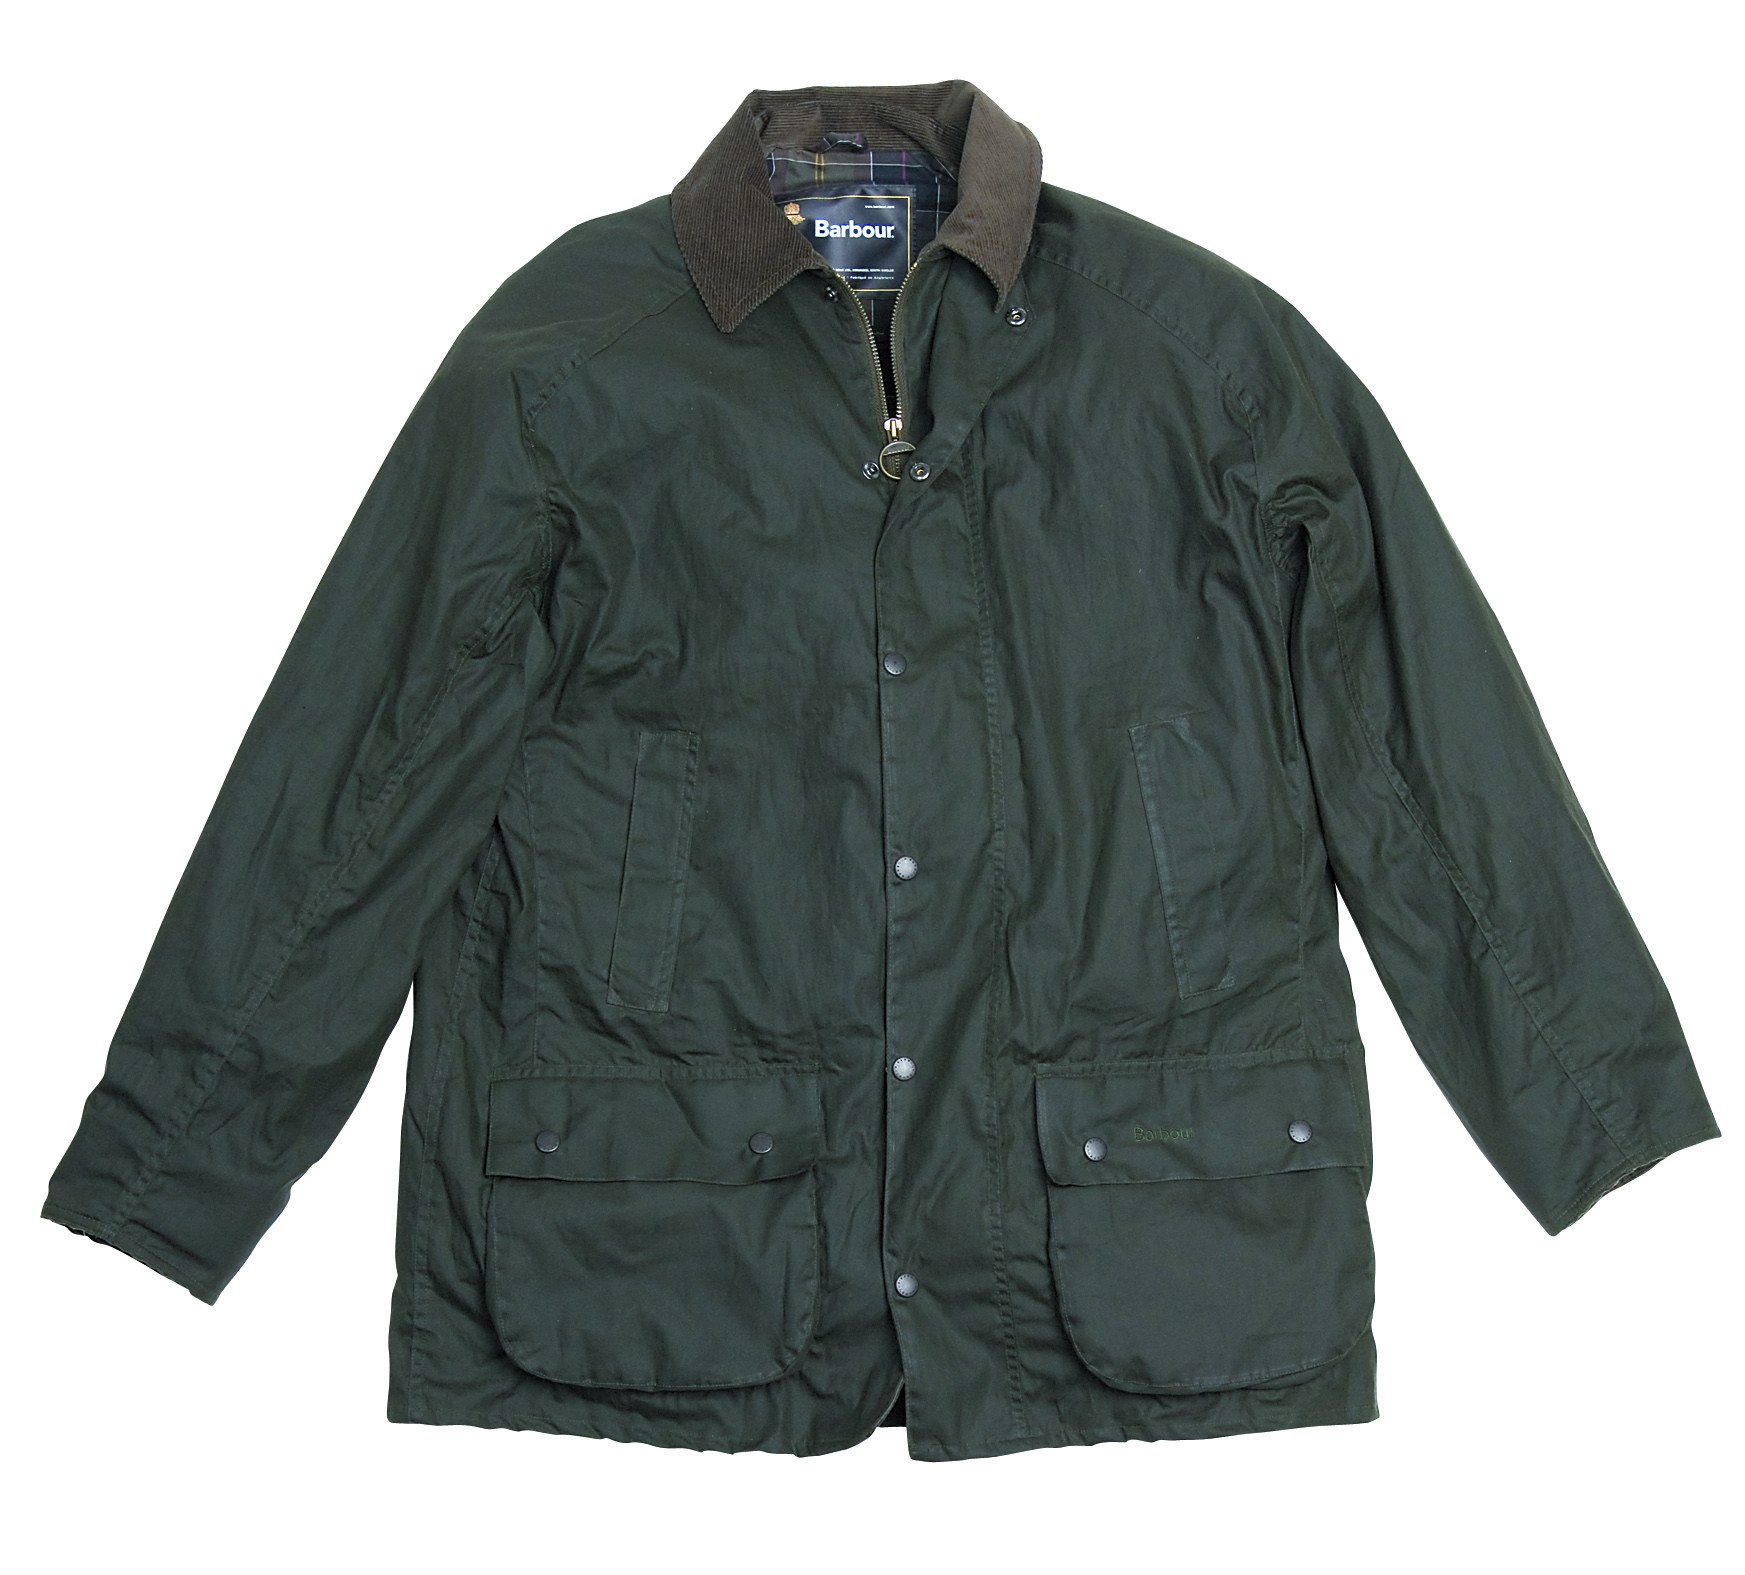 Barbour international jacket gq